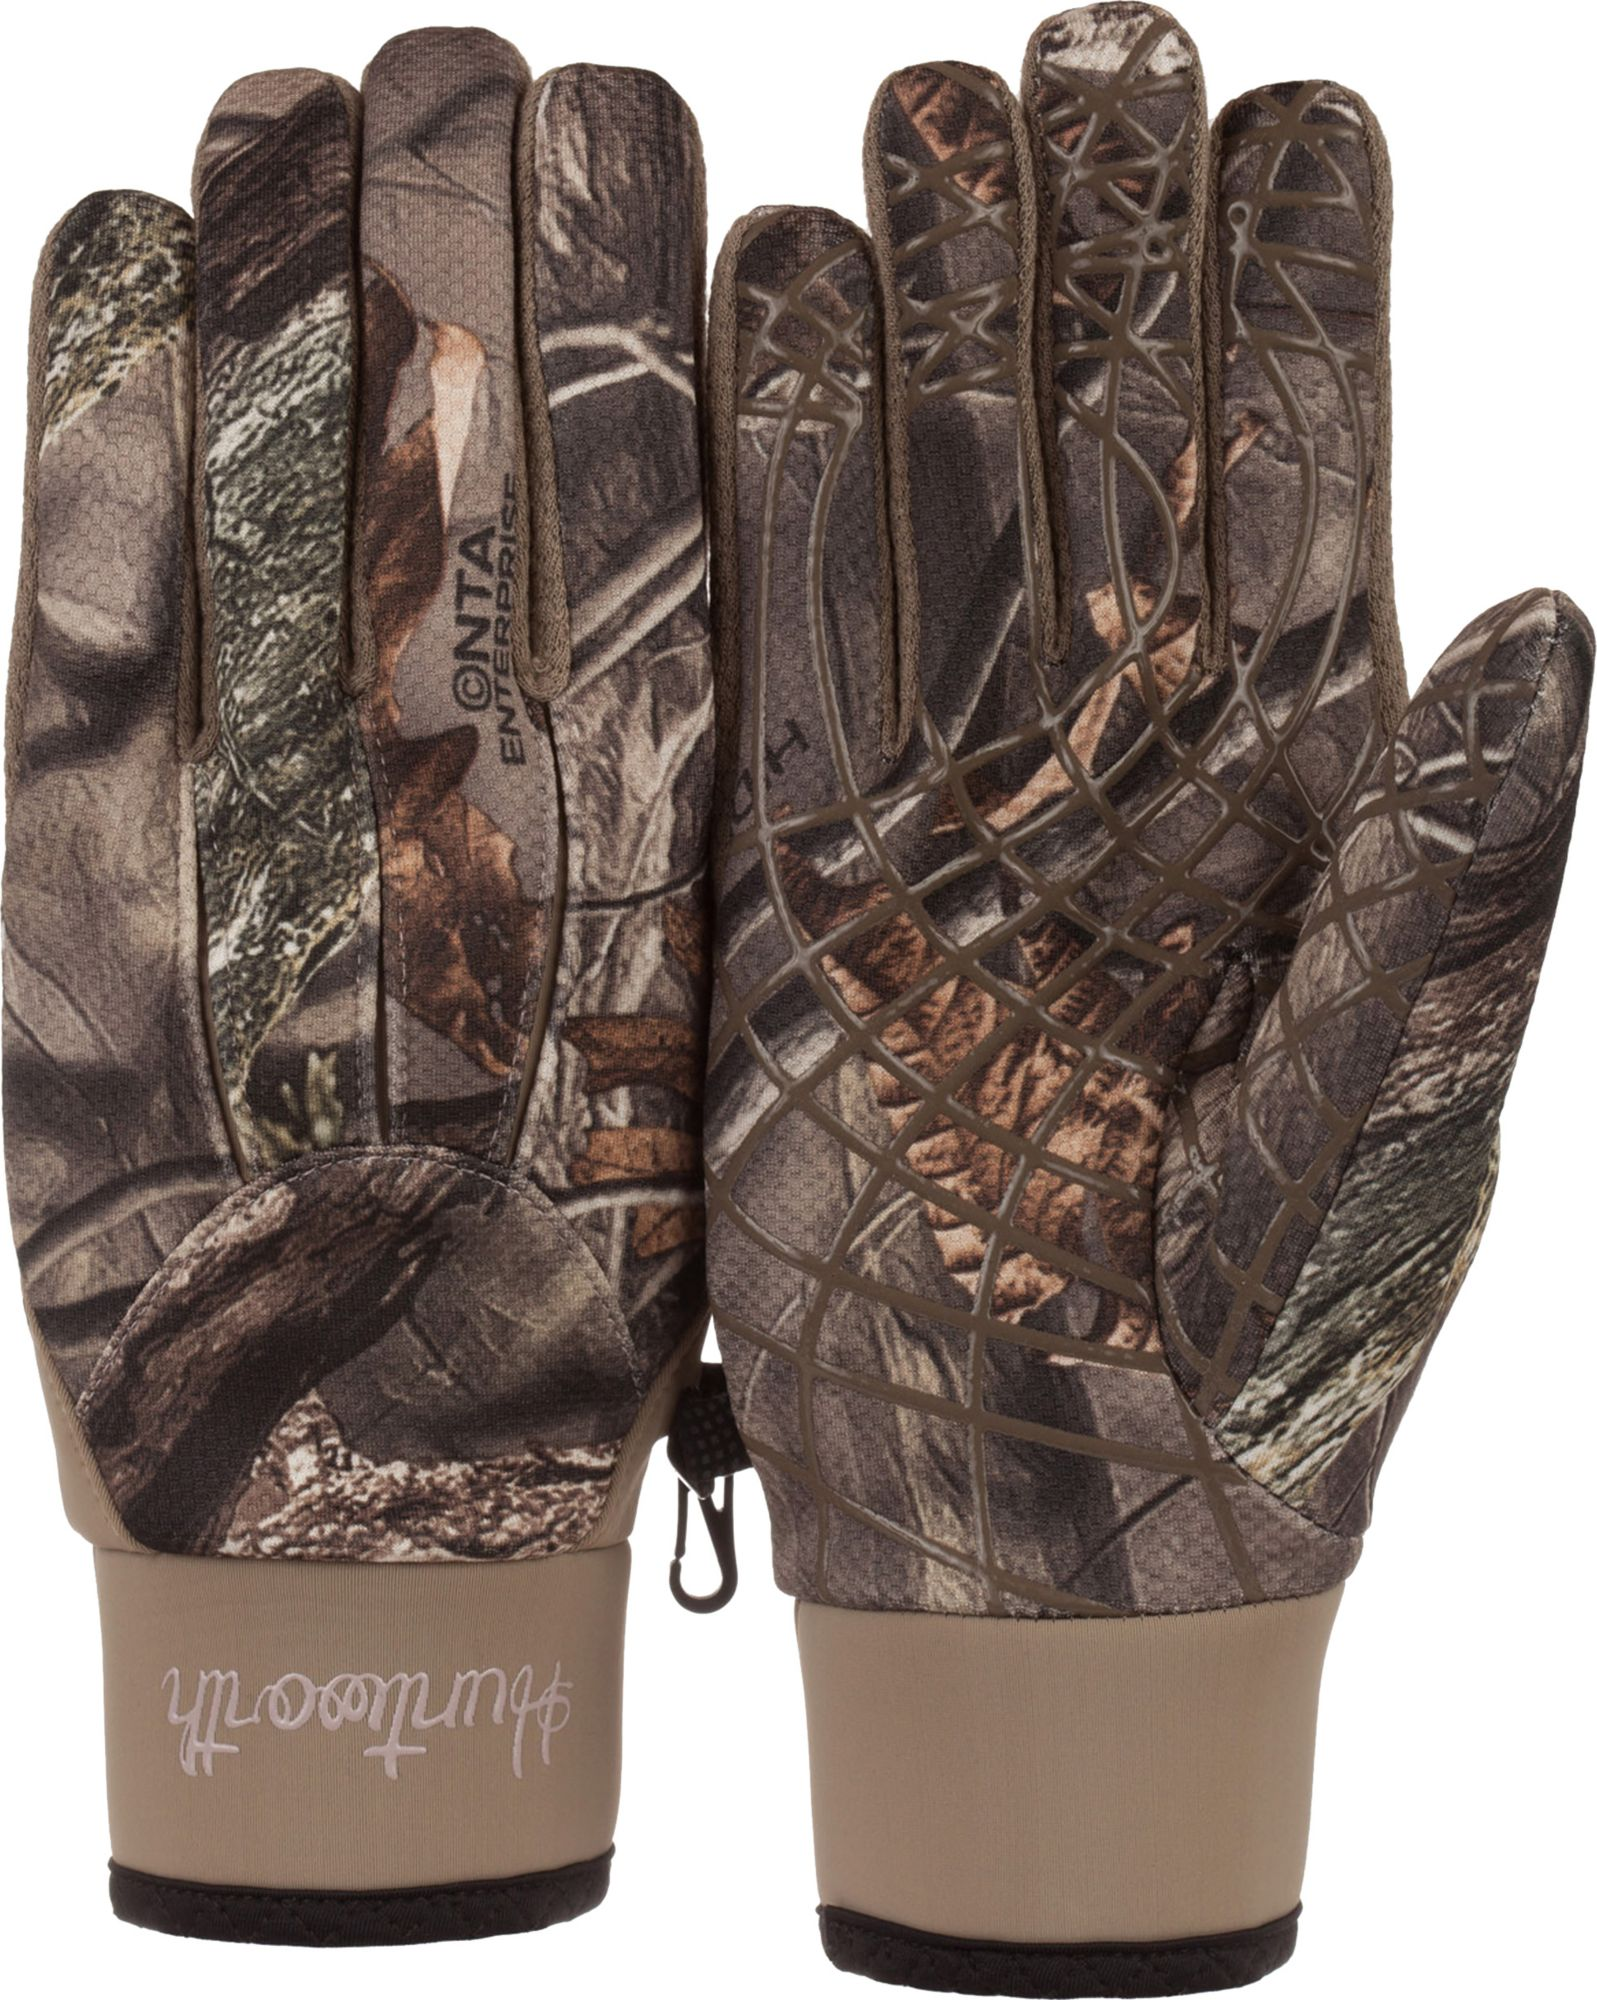 Huntworth Women's Shooter's Gloves, Brown thumbnail